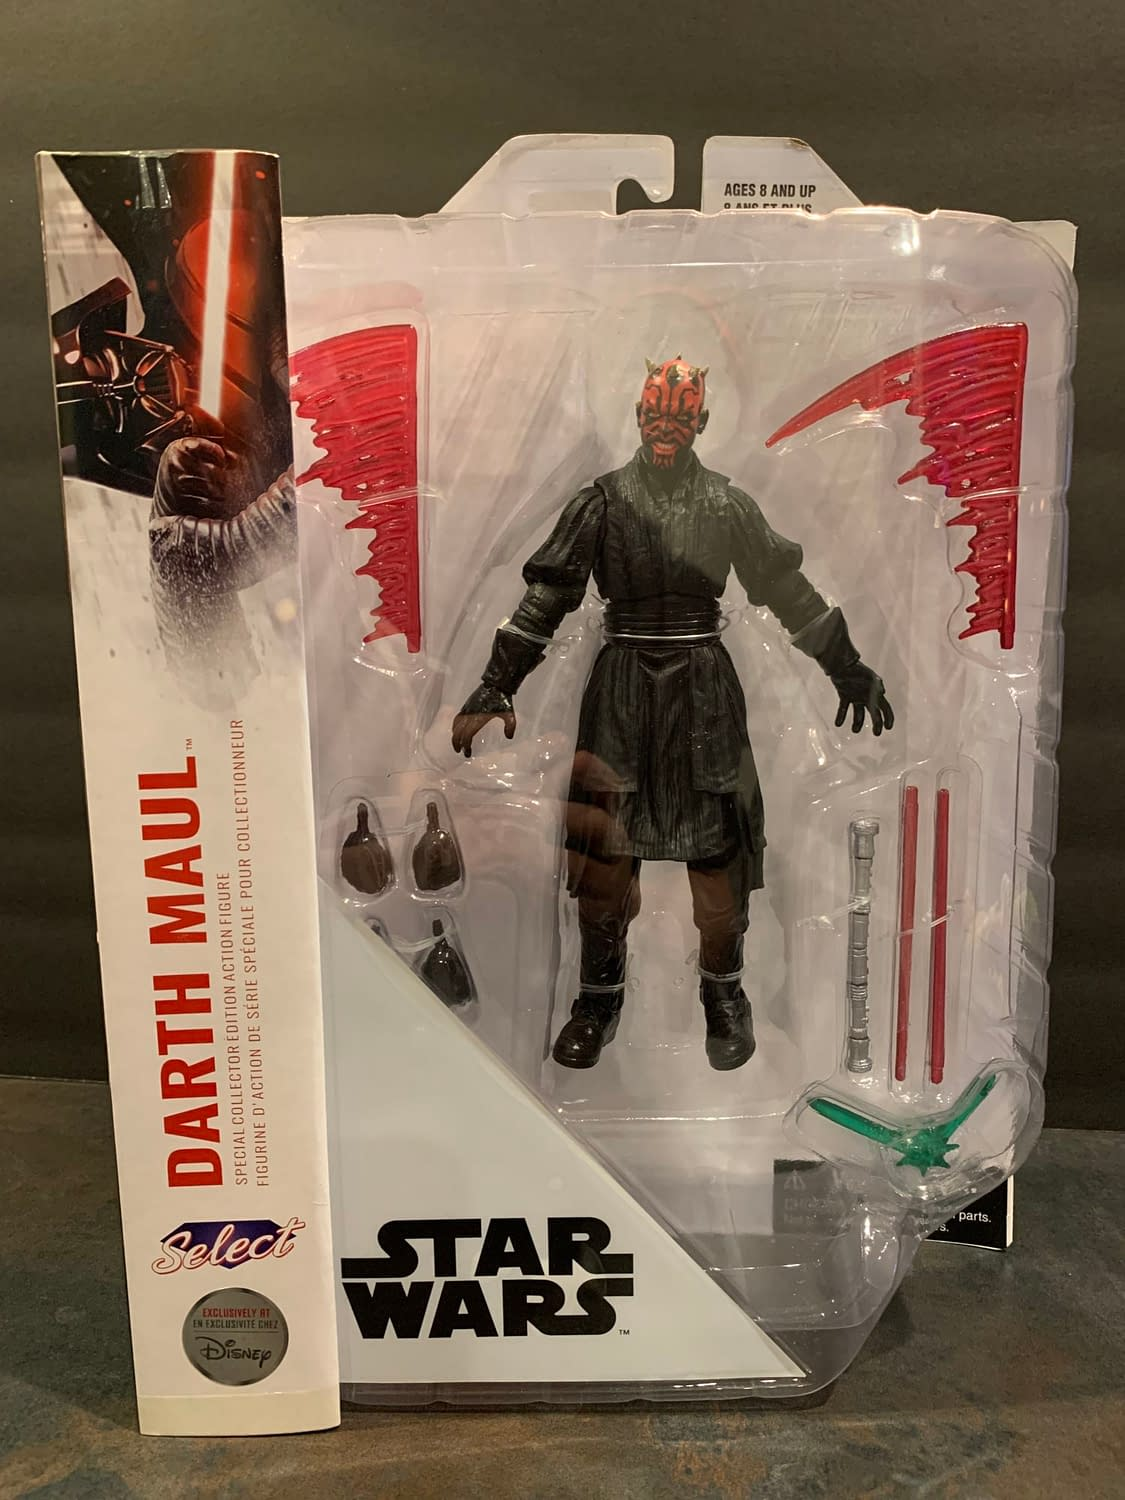 Let's Take A Look At Diamond Select's New Star Wars Darth Maul Figure